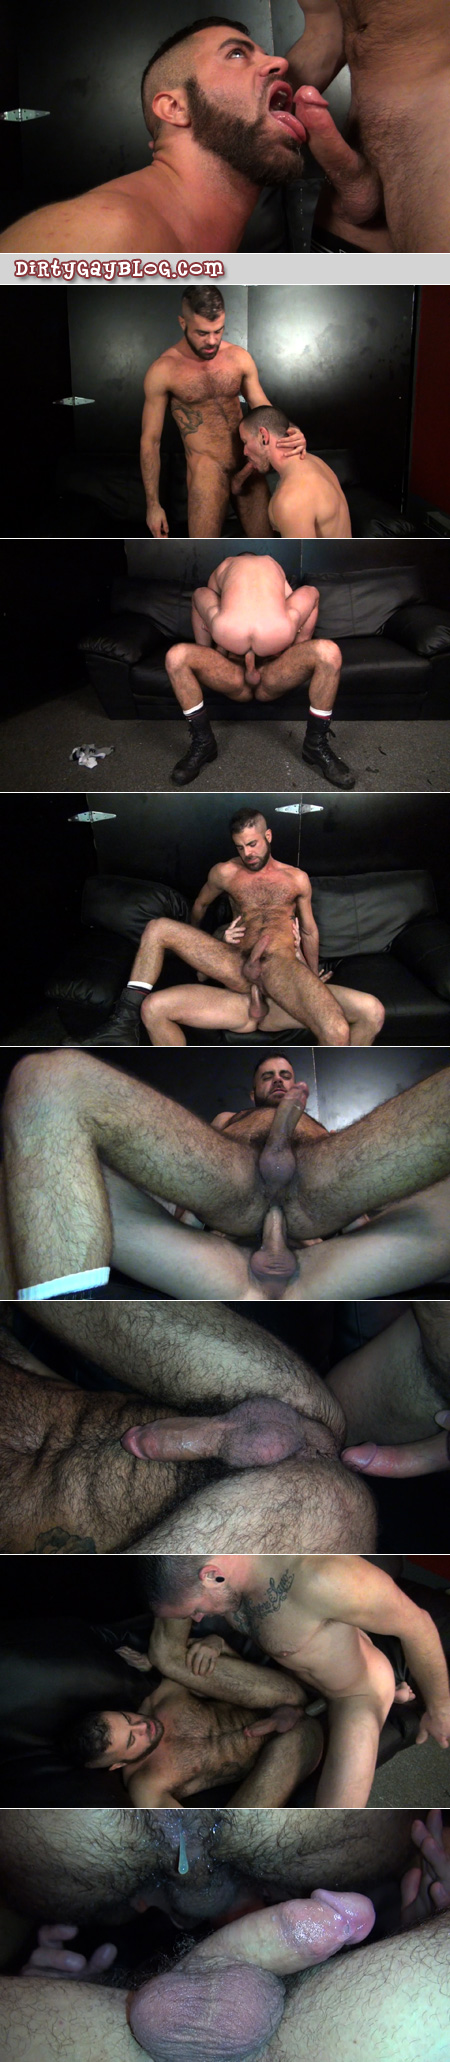 Hairy tattooed guys flip-fuck bareback and fill up each other's assholes with cum.